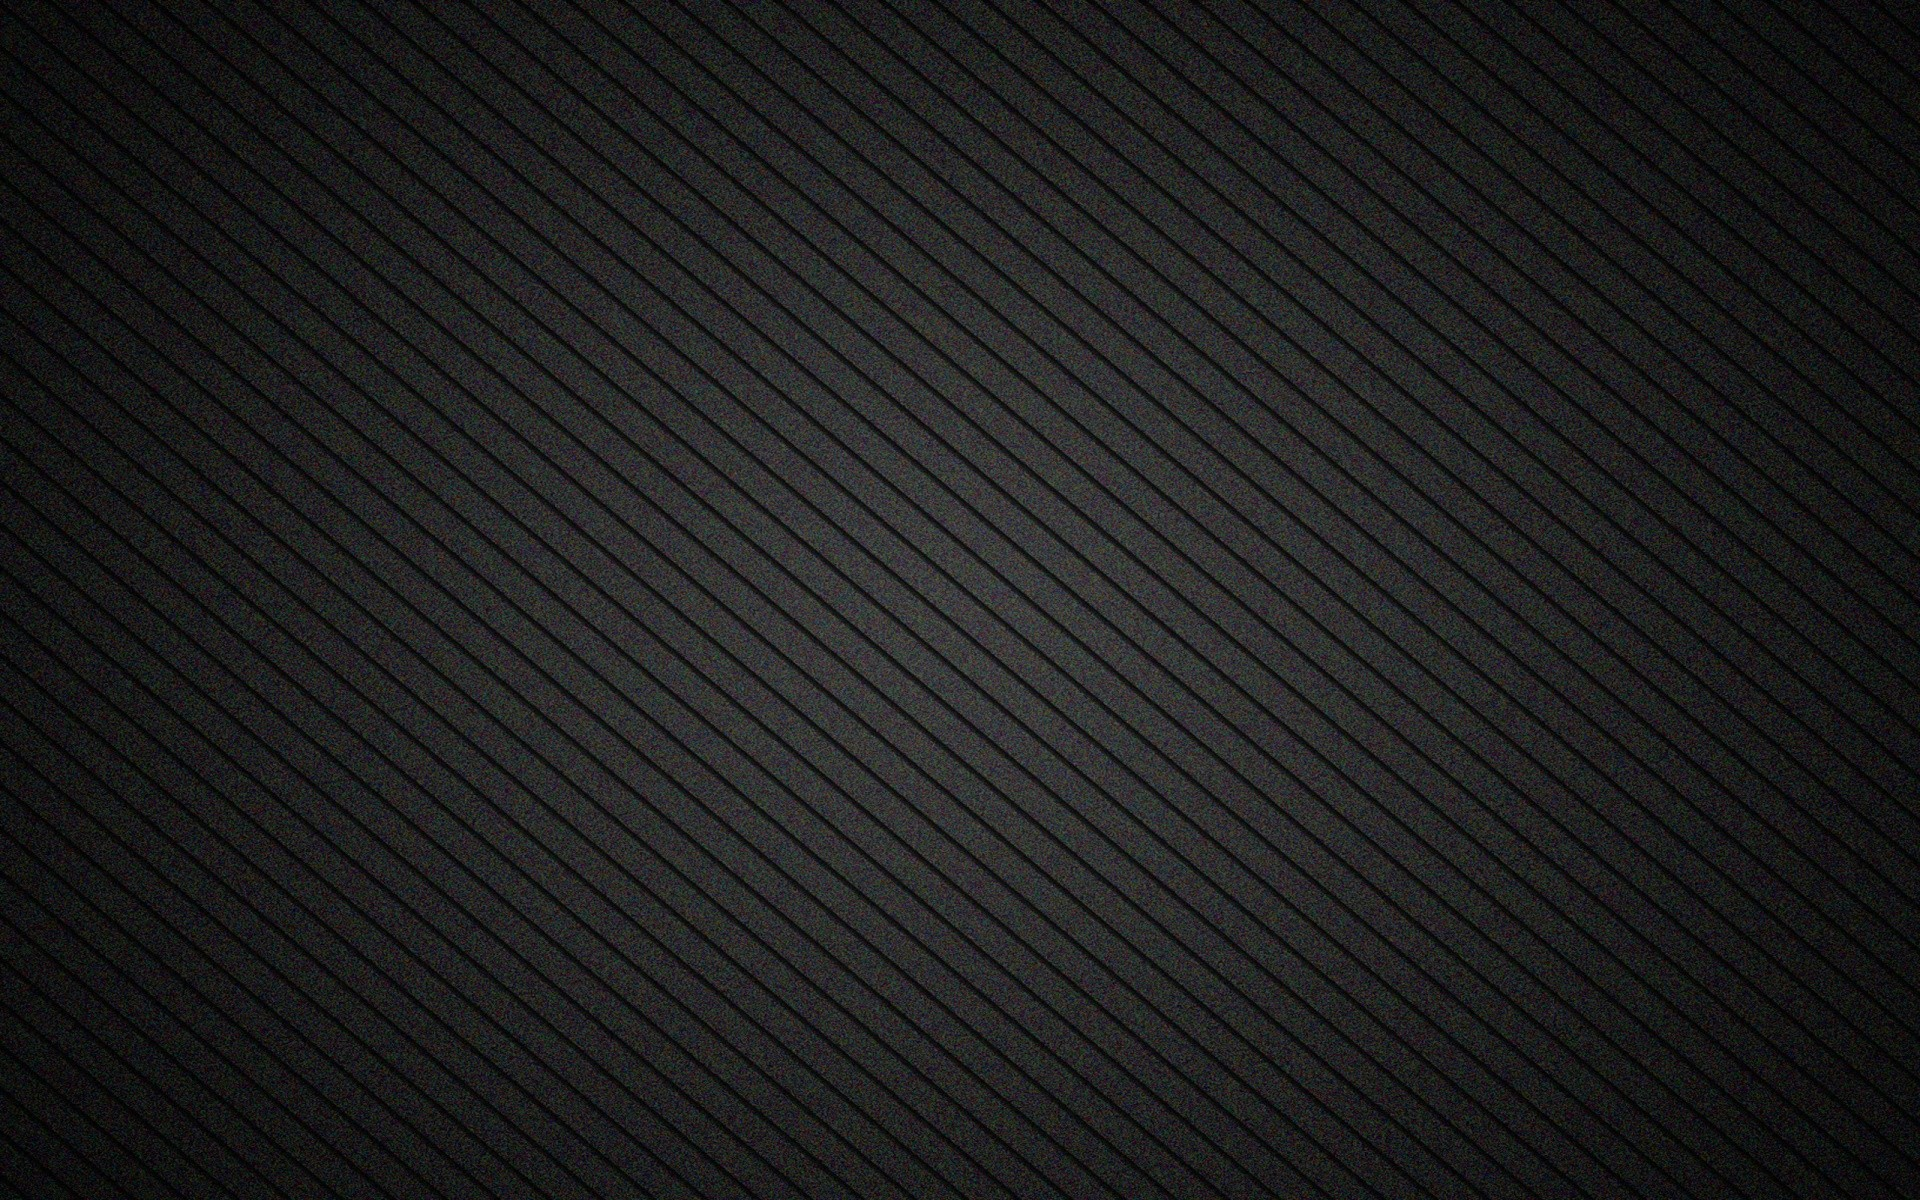 Amazing Wallpapers For Desktop Hd Free Download Black Background 183 ① Download Free Amazing Wallpapers For